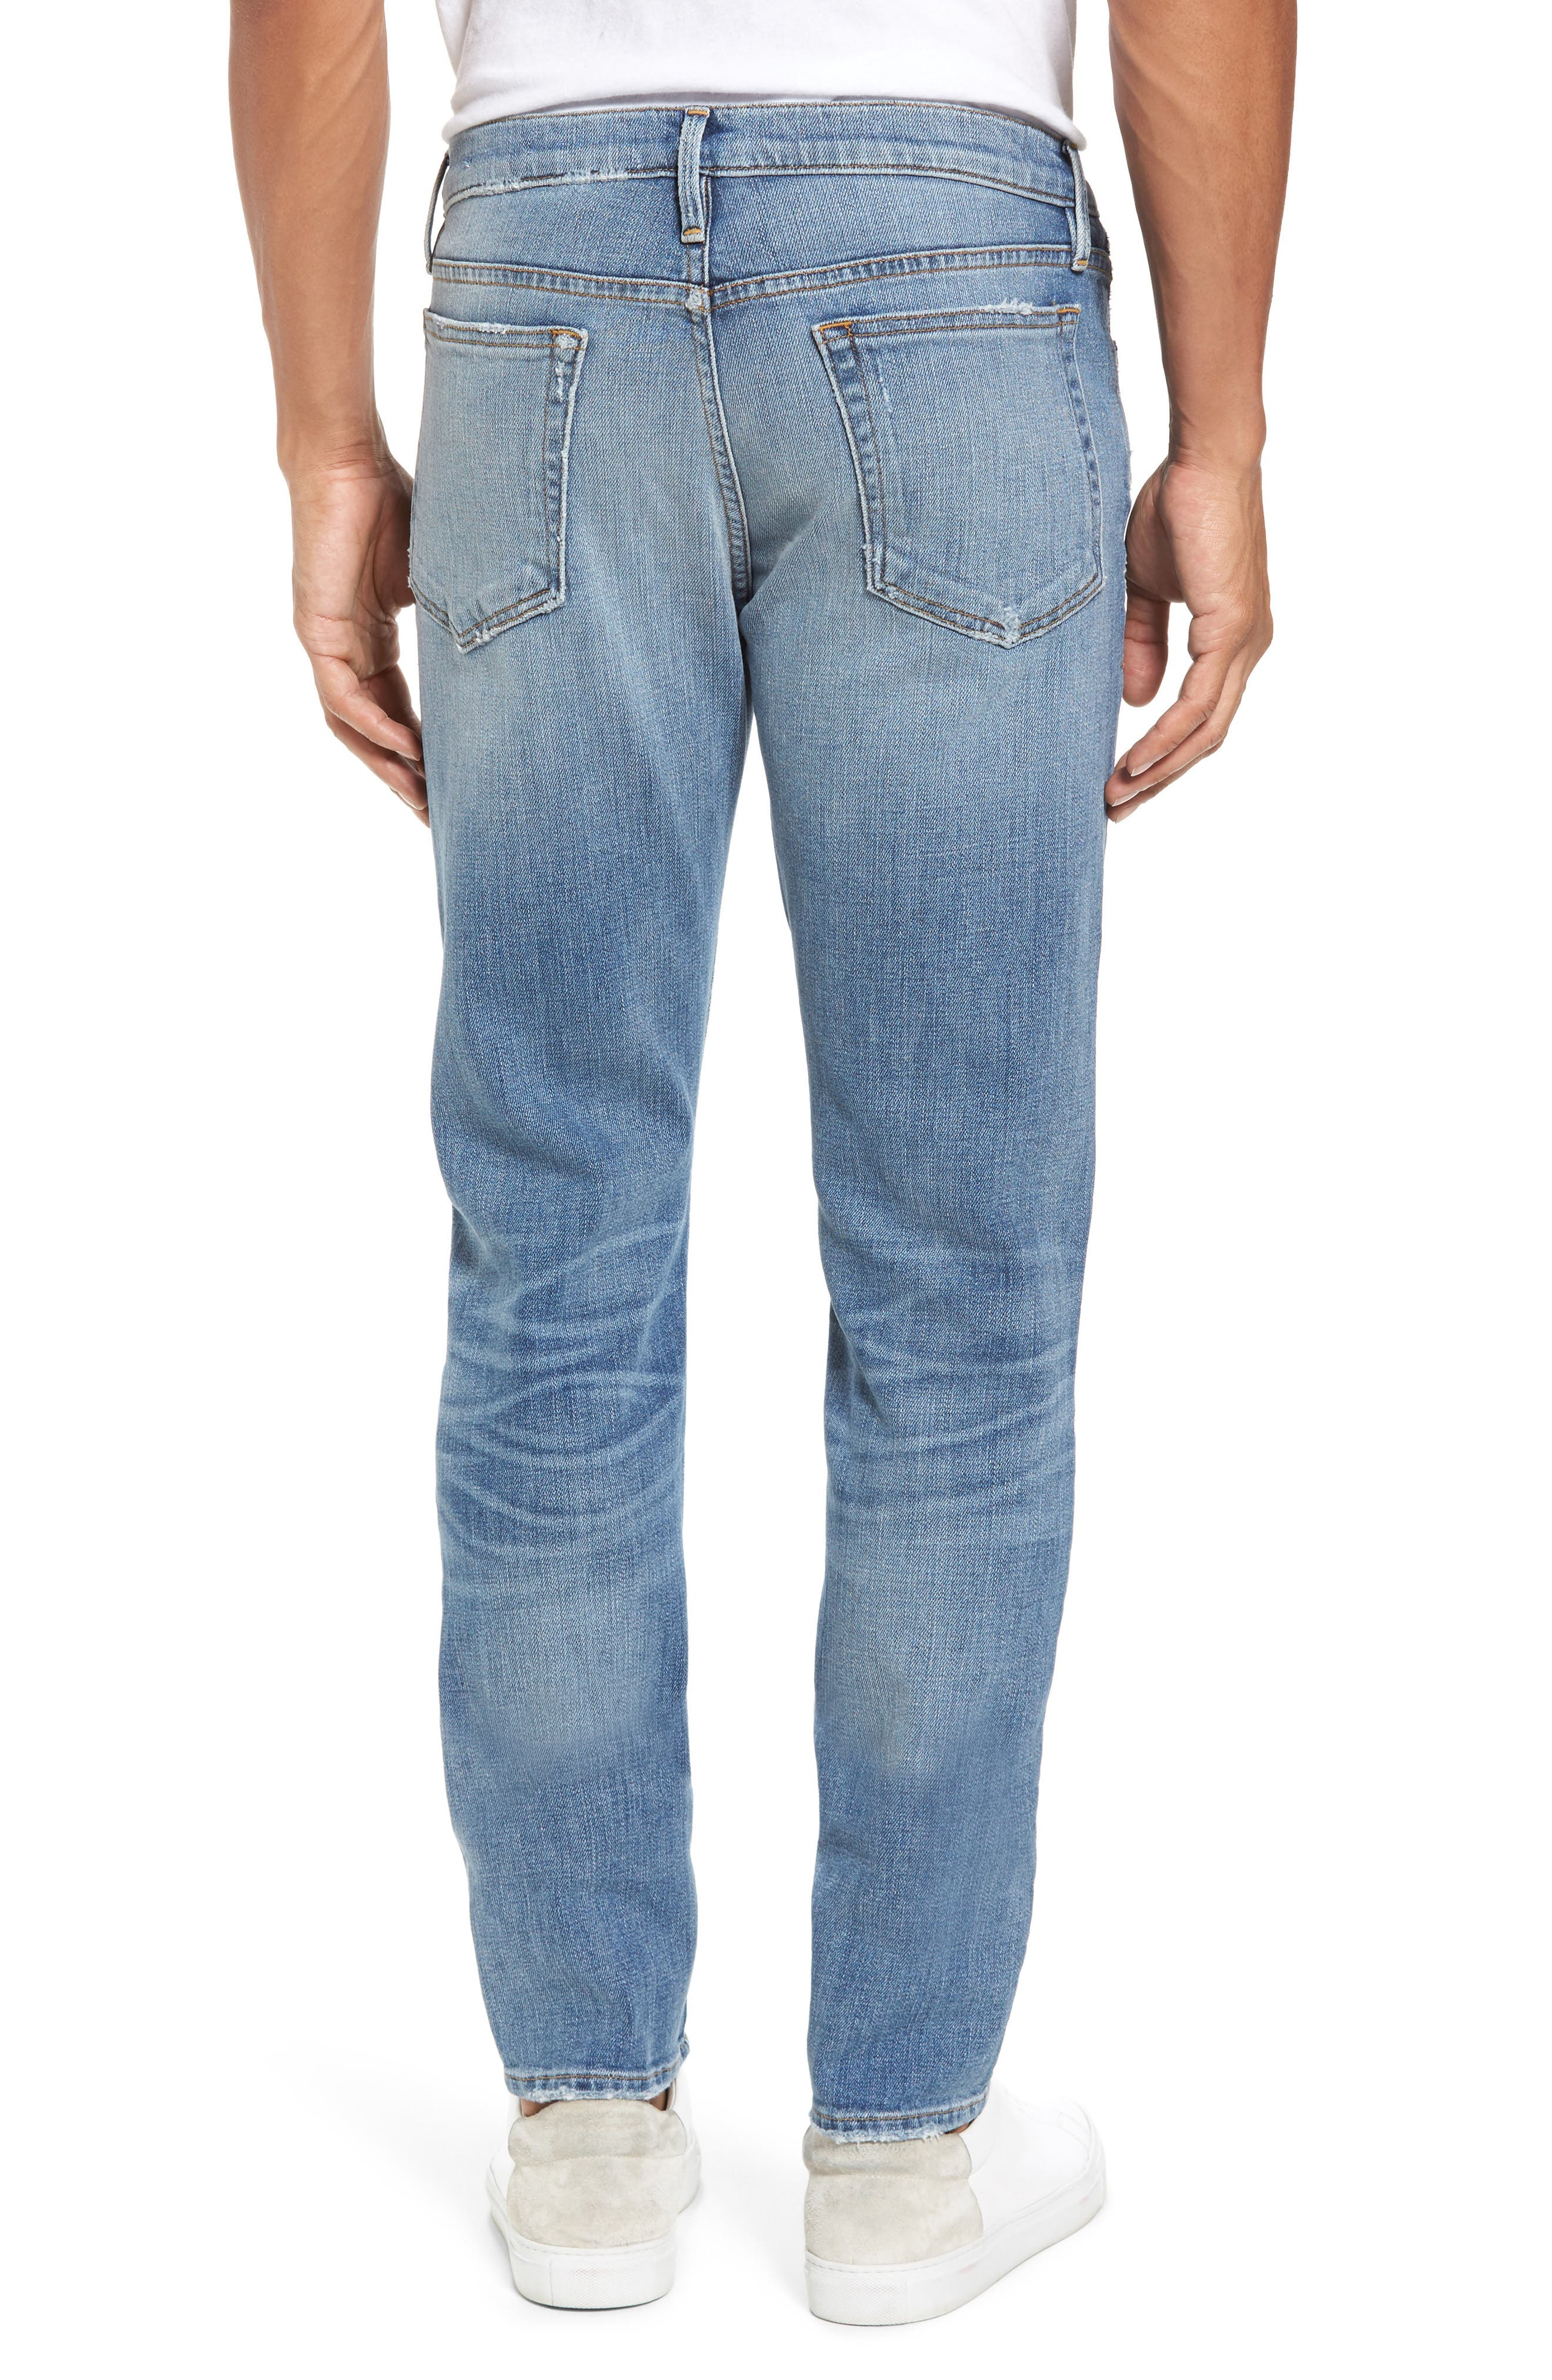 L'Homme Slim Fit Jeans,                             Alternate thumbnail 2, color,                             Beaudry